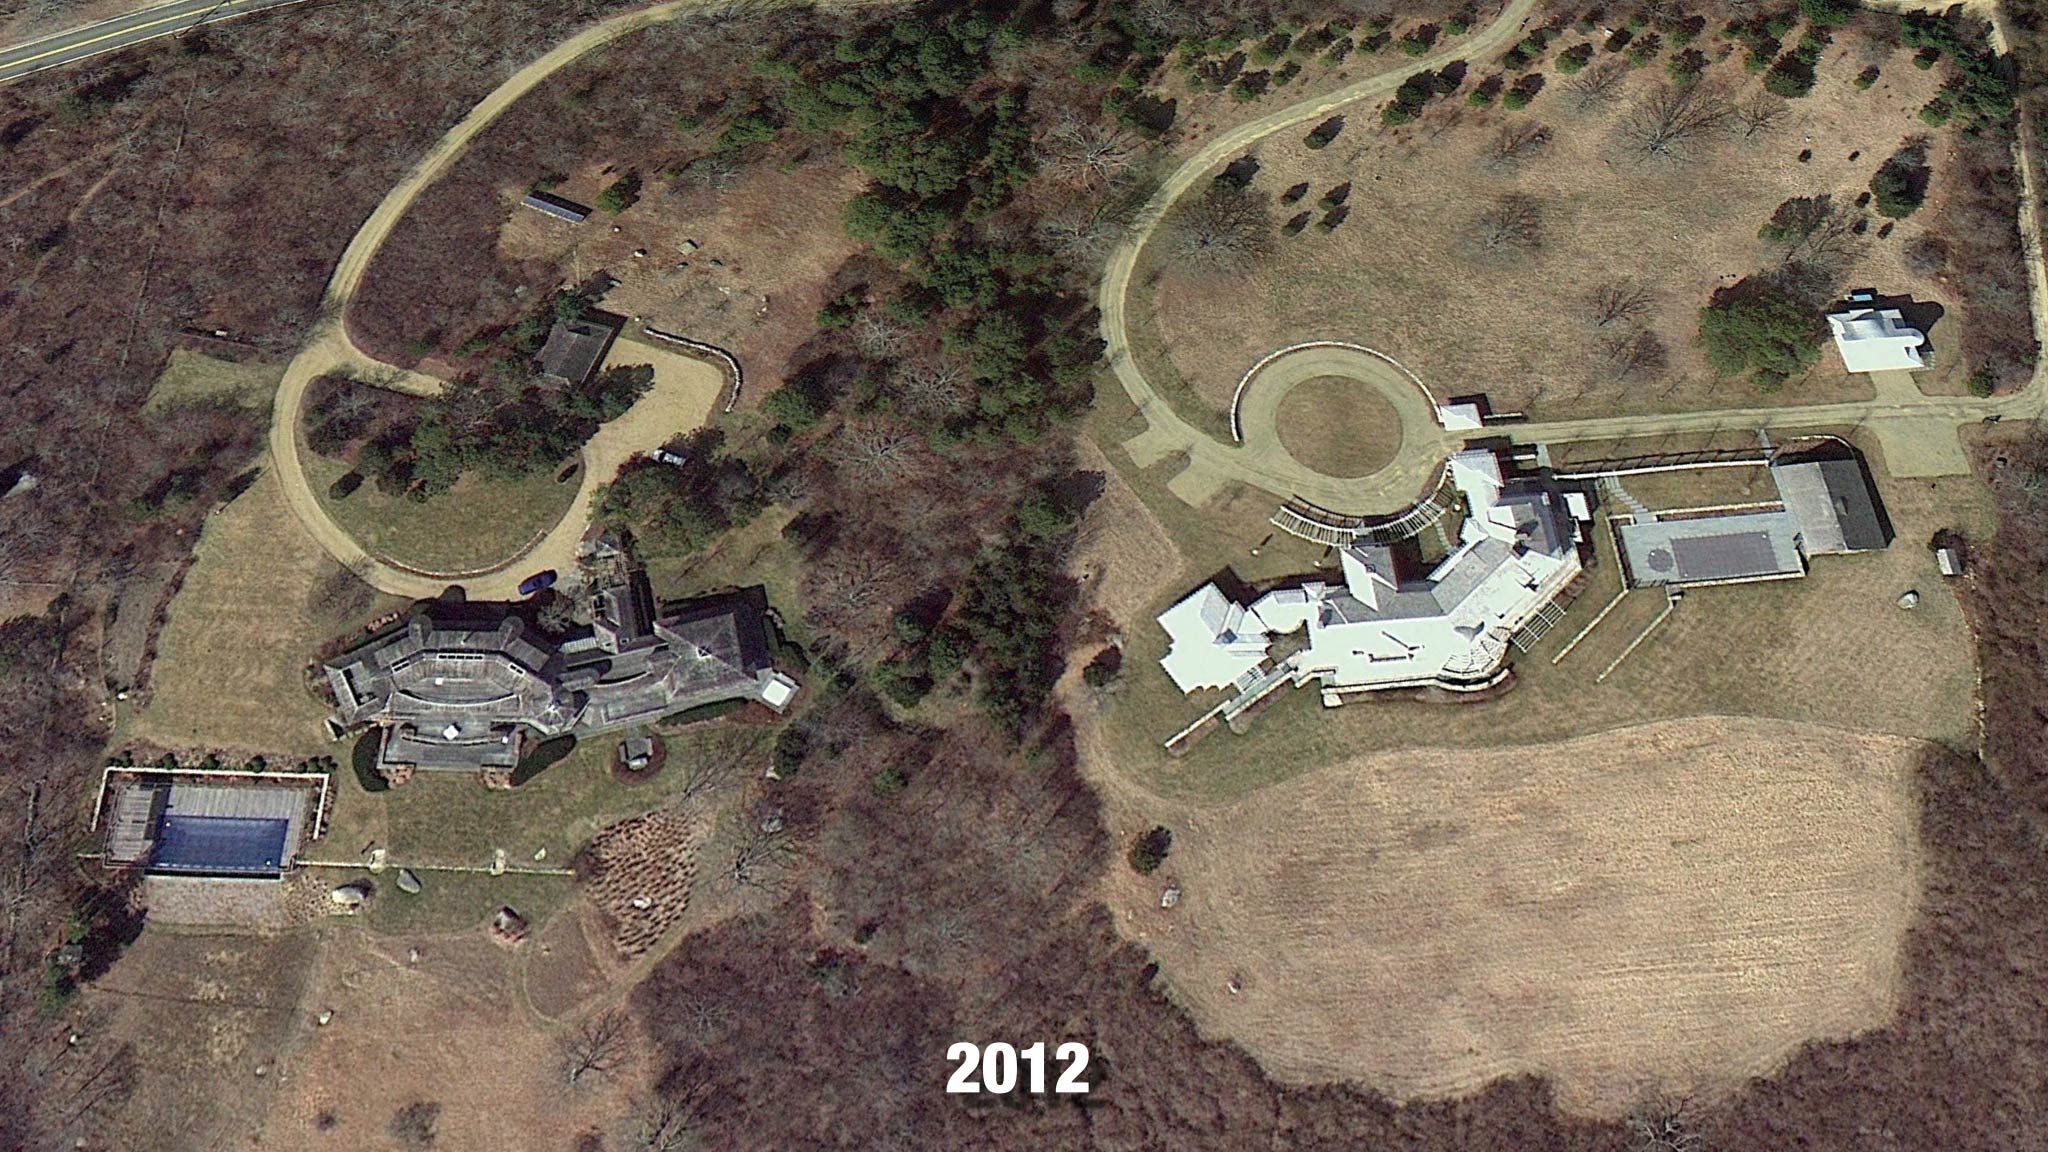 Copy of Satellite imagery by Google Earth